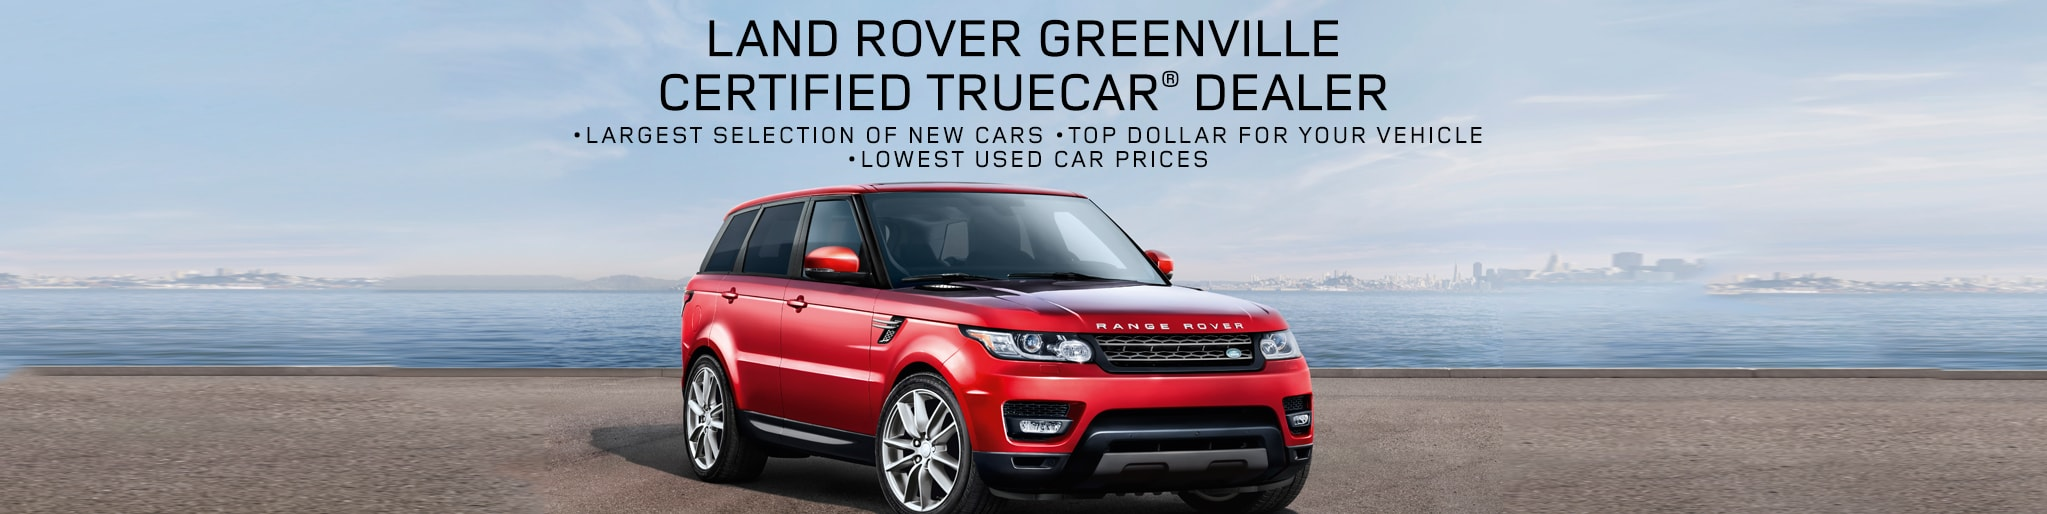 Certified Land Rover TrueCar Dealer in Greenville, SC